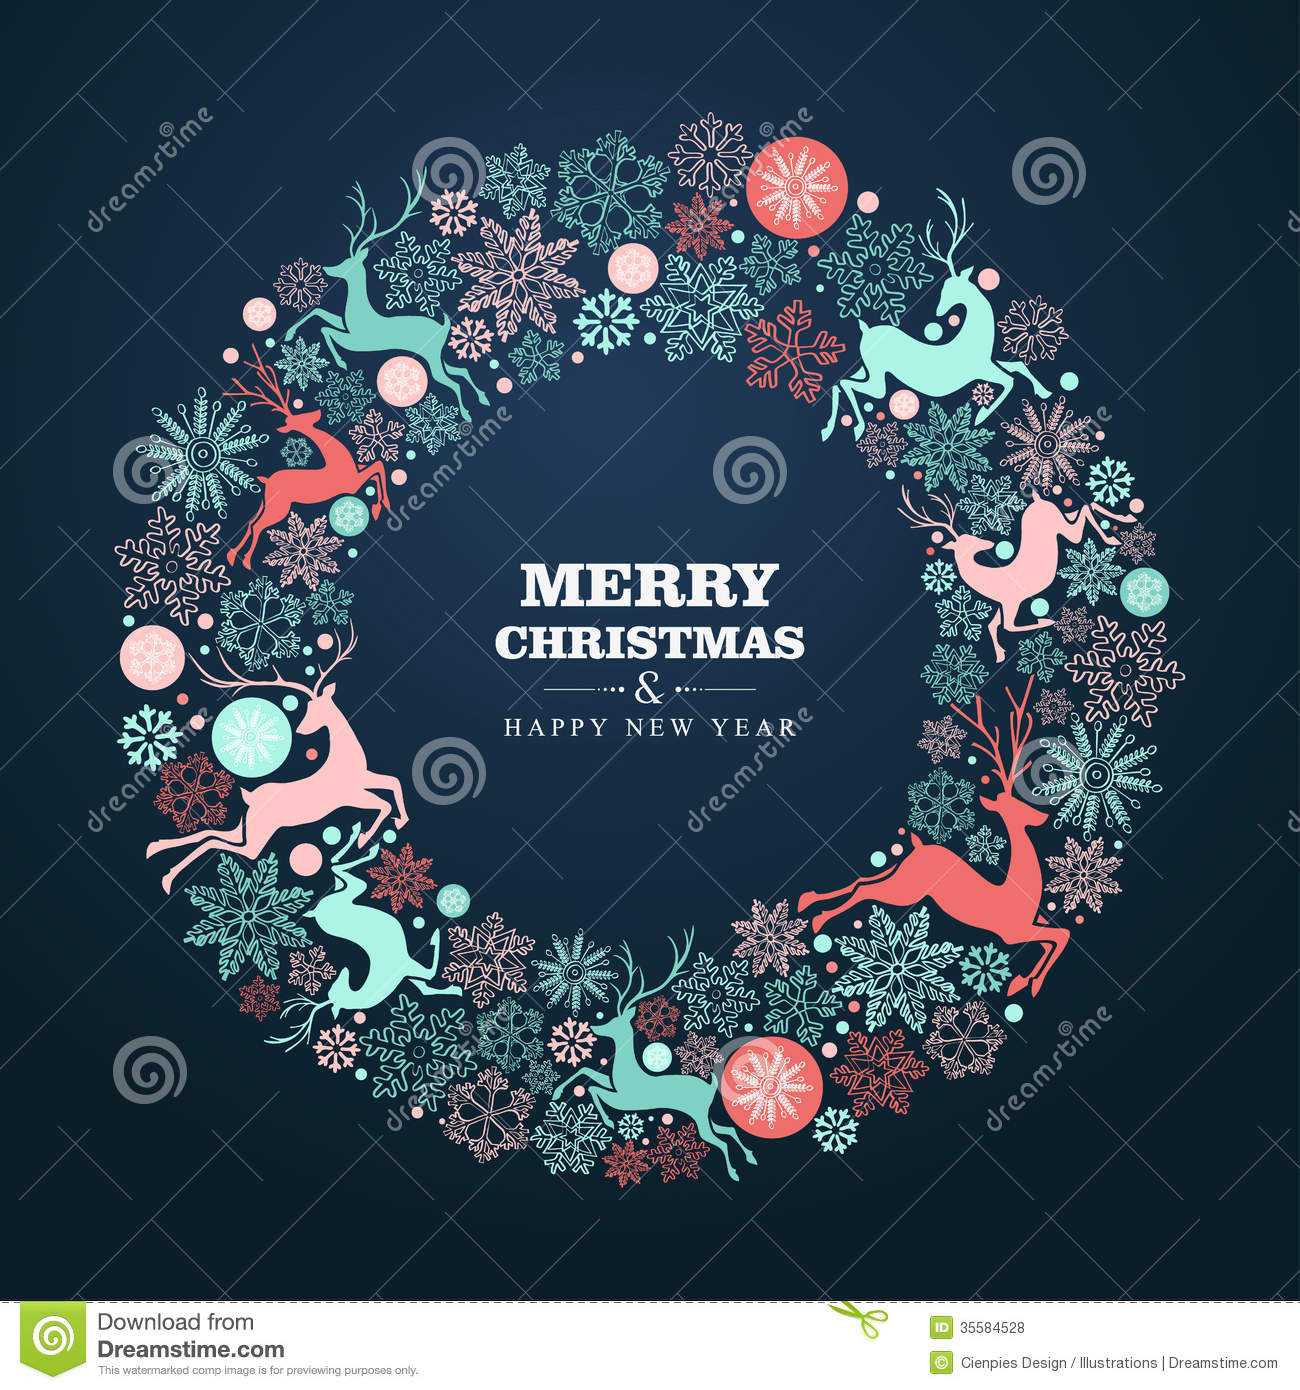 Merry christmas and happy new year greeting card stock vector merry christmas and happy new year greeting card celebration trendy m4hsunfo